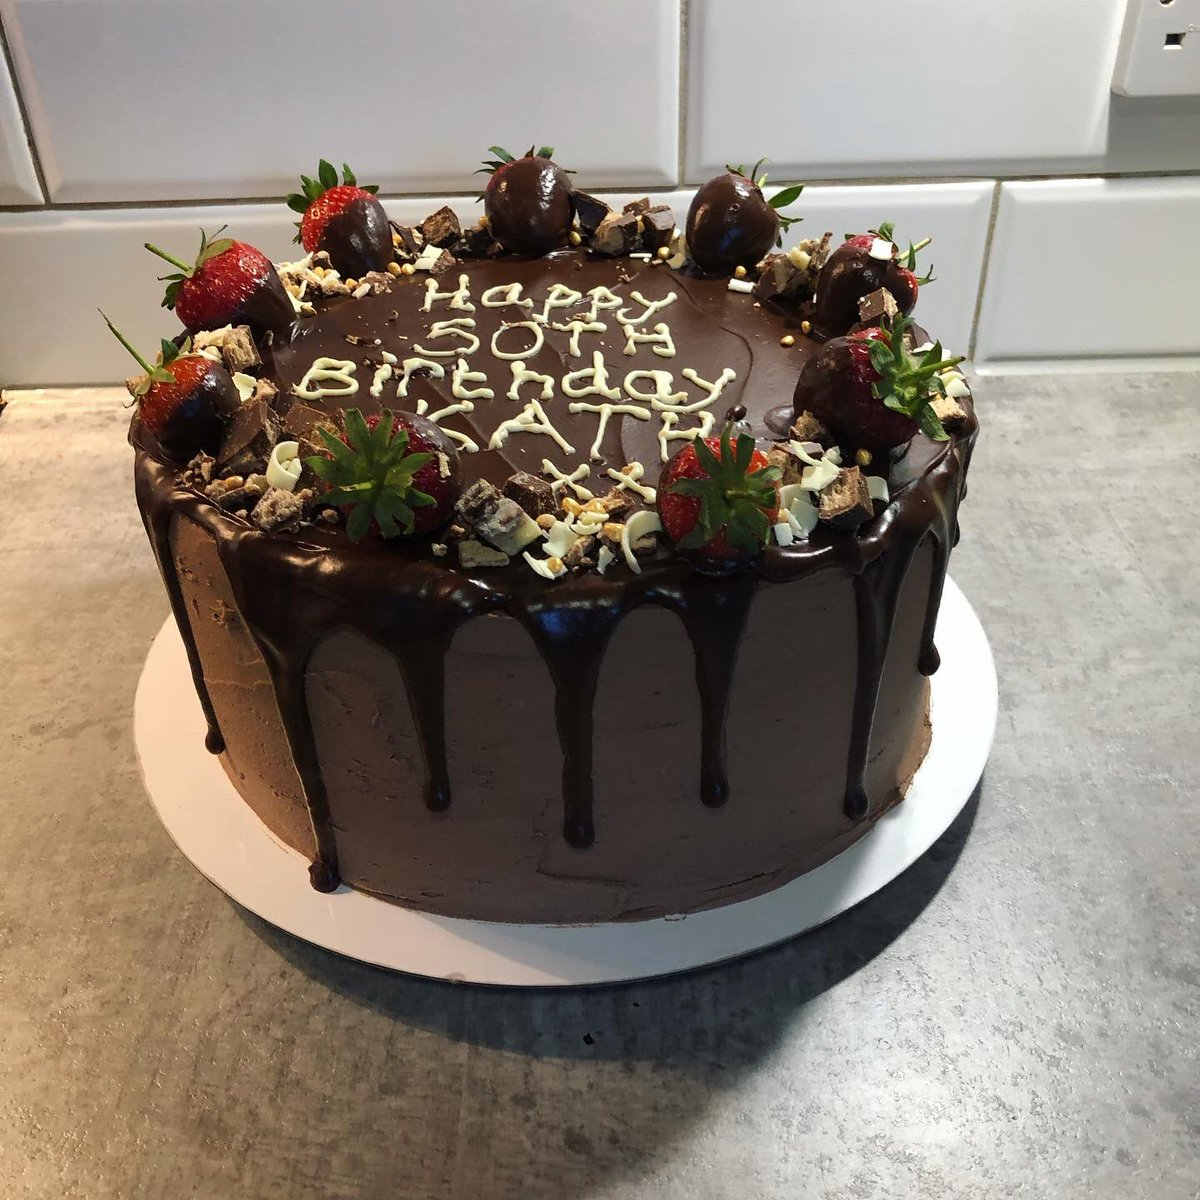 Cakes!  Lots of them this week, thanks for your orders! #cake #birthdaycake #lockdowncake #caterer #se4 #croftonpark #brockley #lewisham #catford #supportlocal #supportsmallbusinesspic.twitter.com/yMBLdTctKA